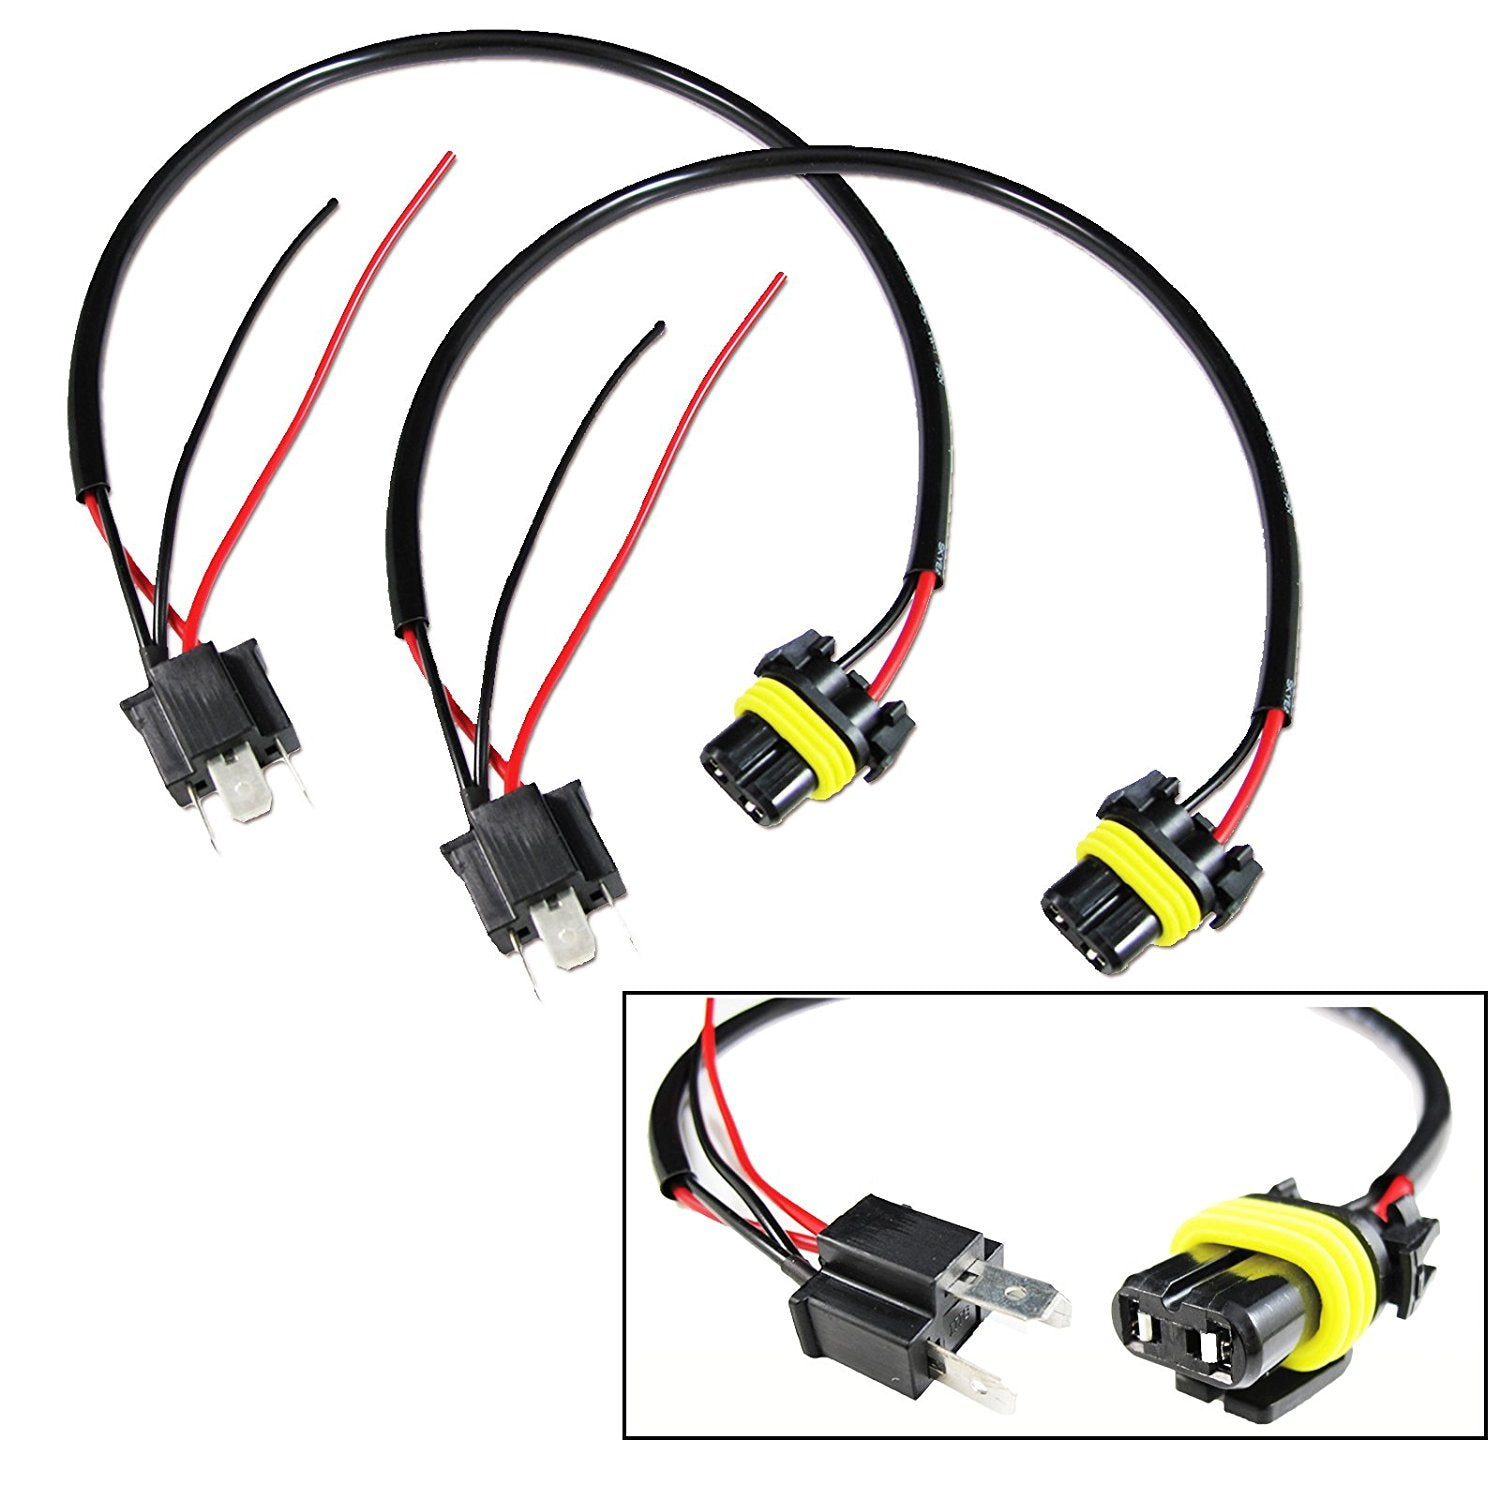 9006 To H4 Conversion Wires Adapters Headlight Retrofit or